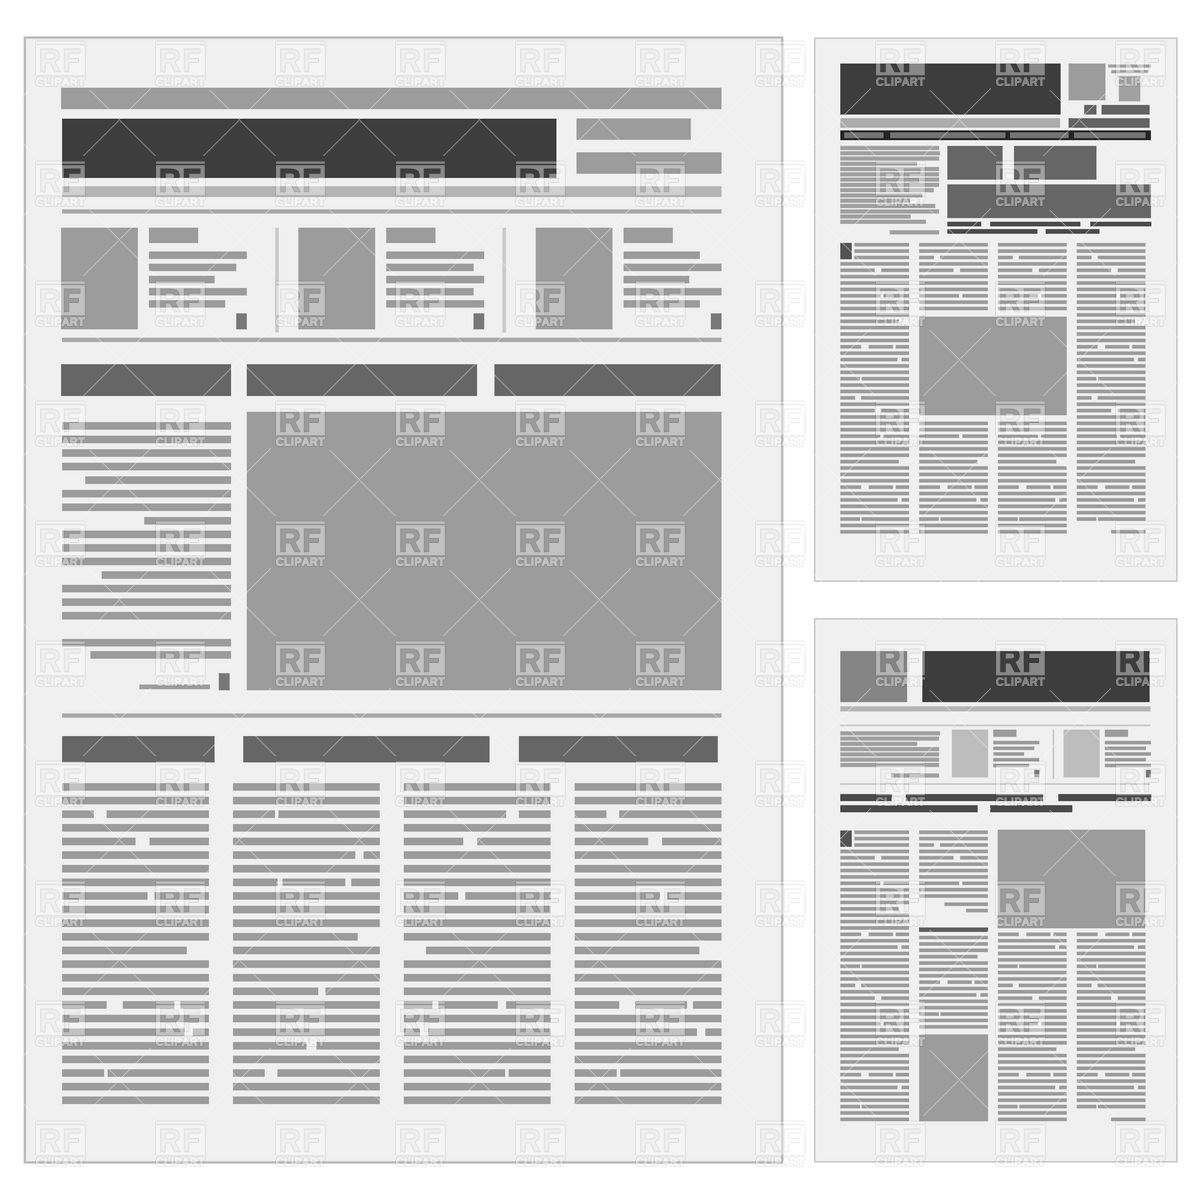 generic-newspaper-layout-Download-Royalty-free-Vector-File-EPS-15836 ...